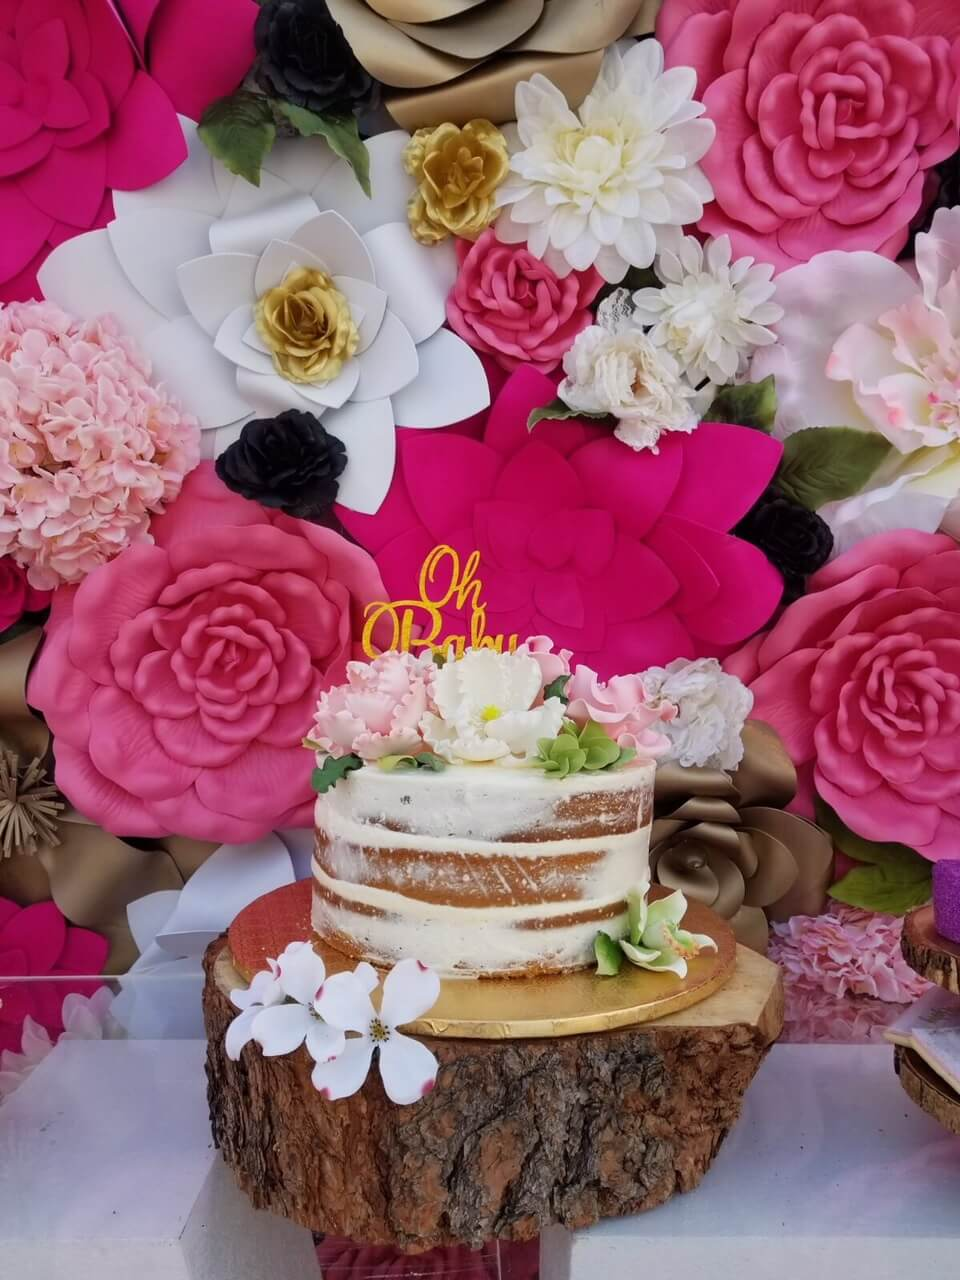 Oh Baby cake with flowers in background